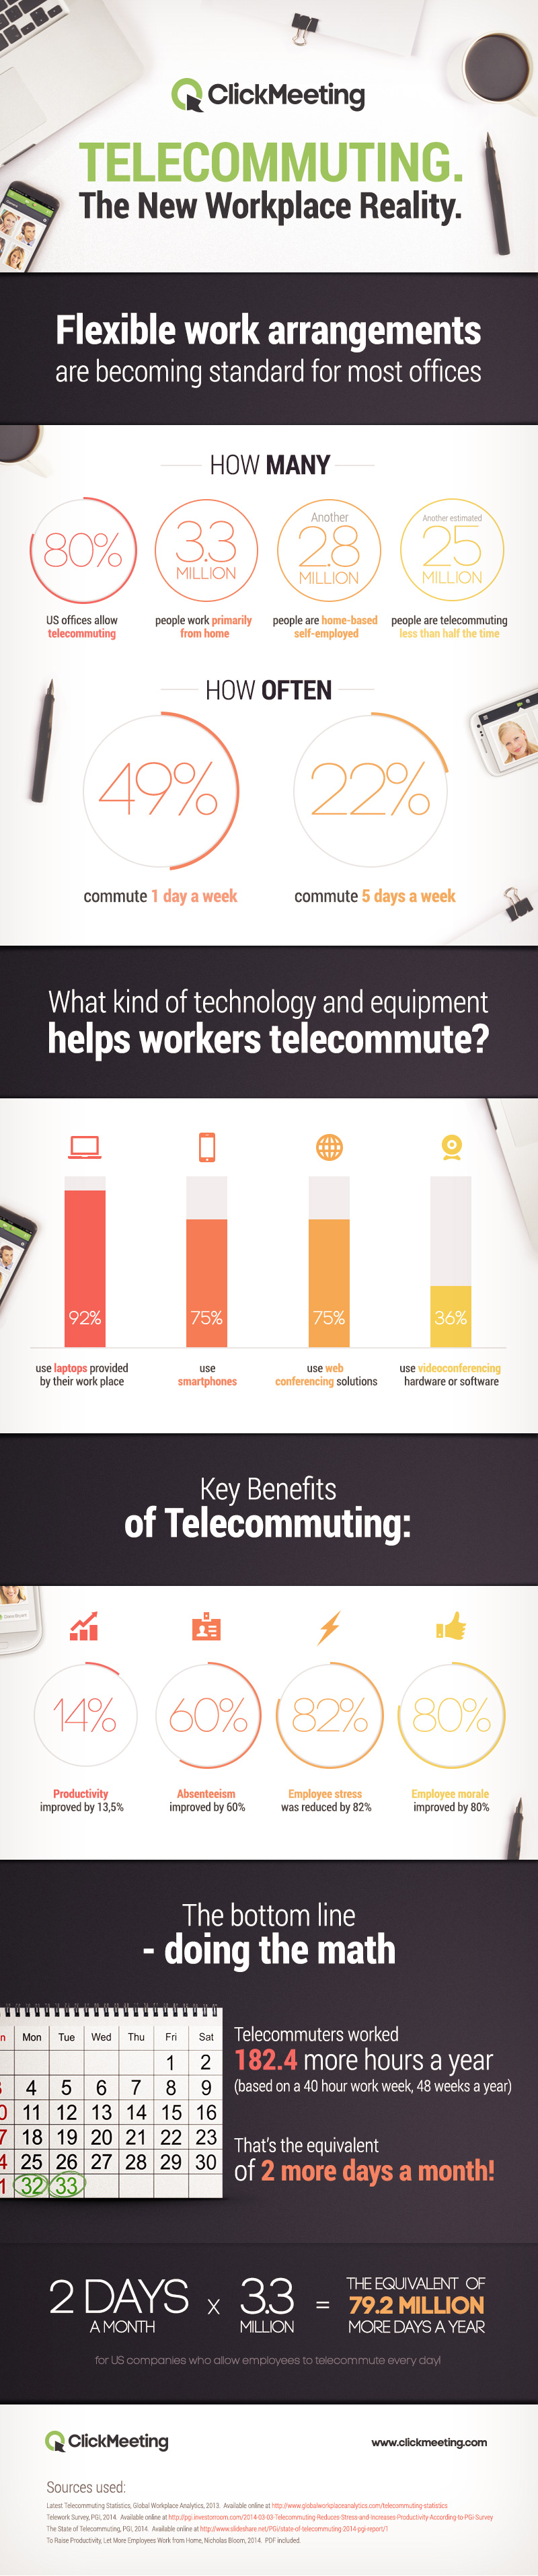 Flexible Working infographic